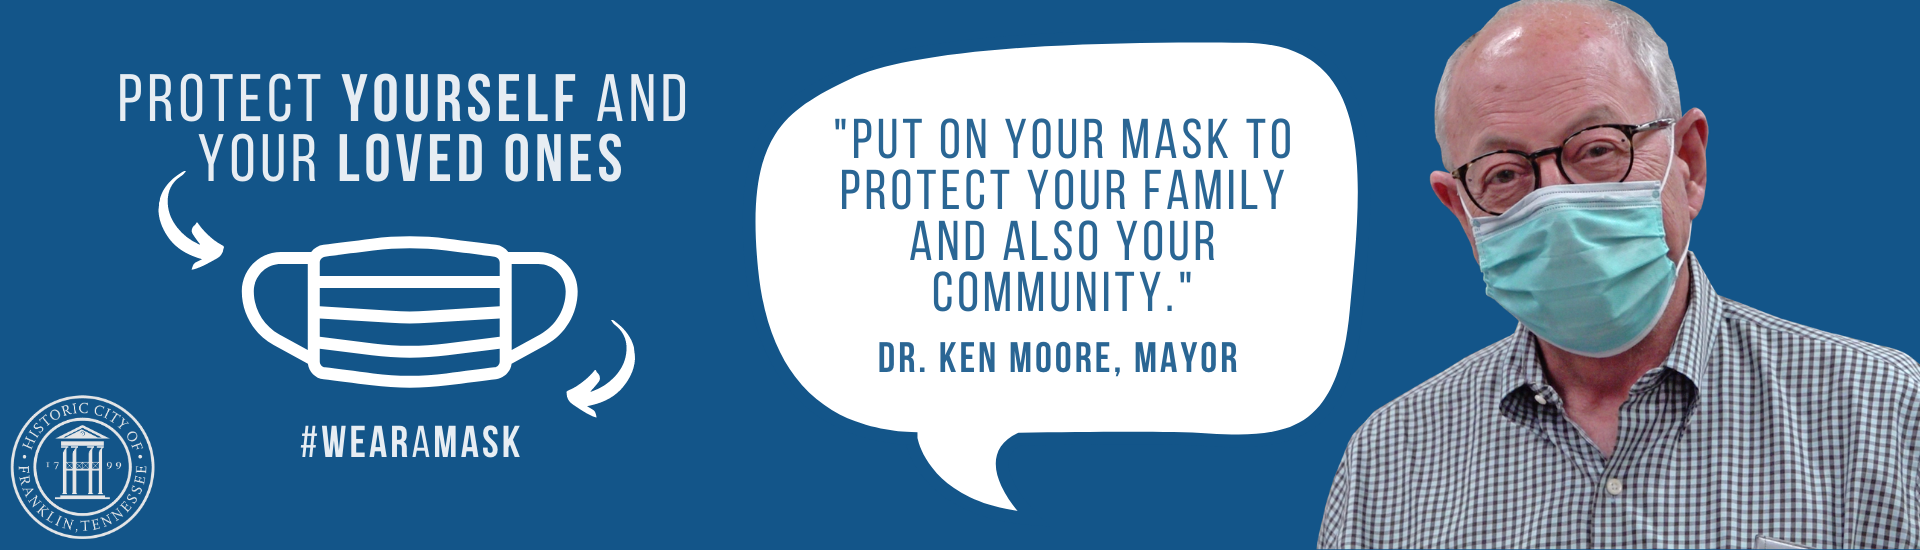 Banner with Mayor Moore wearing a mask for the Mask Campaign